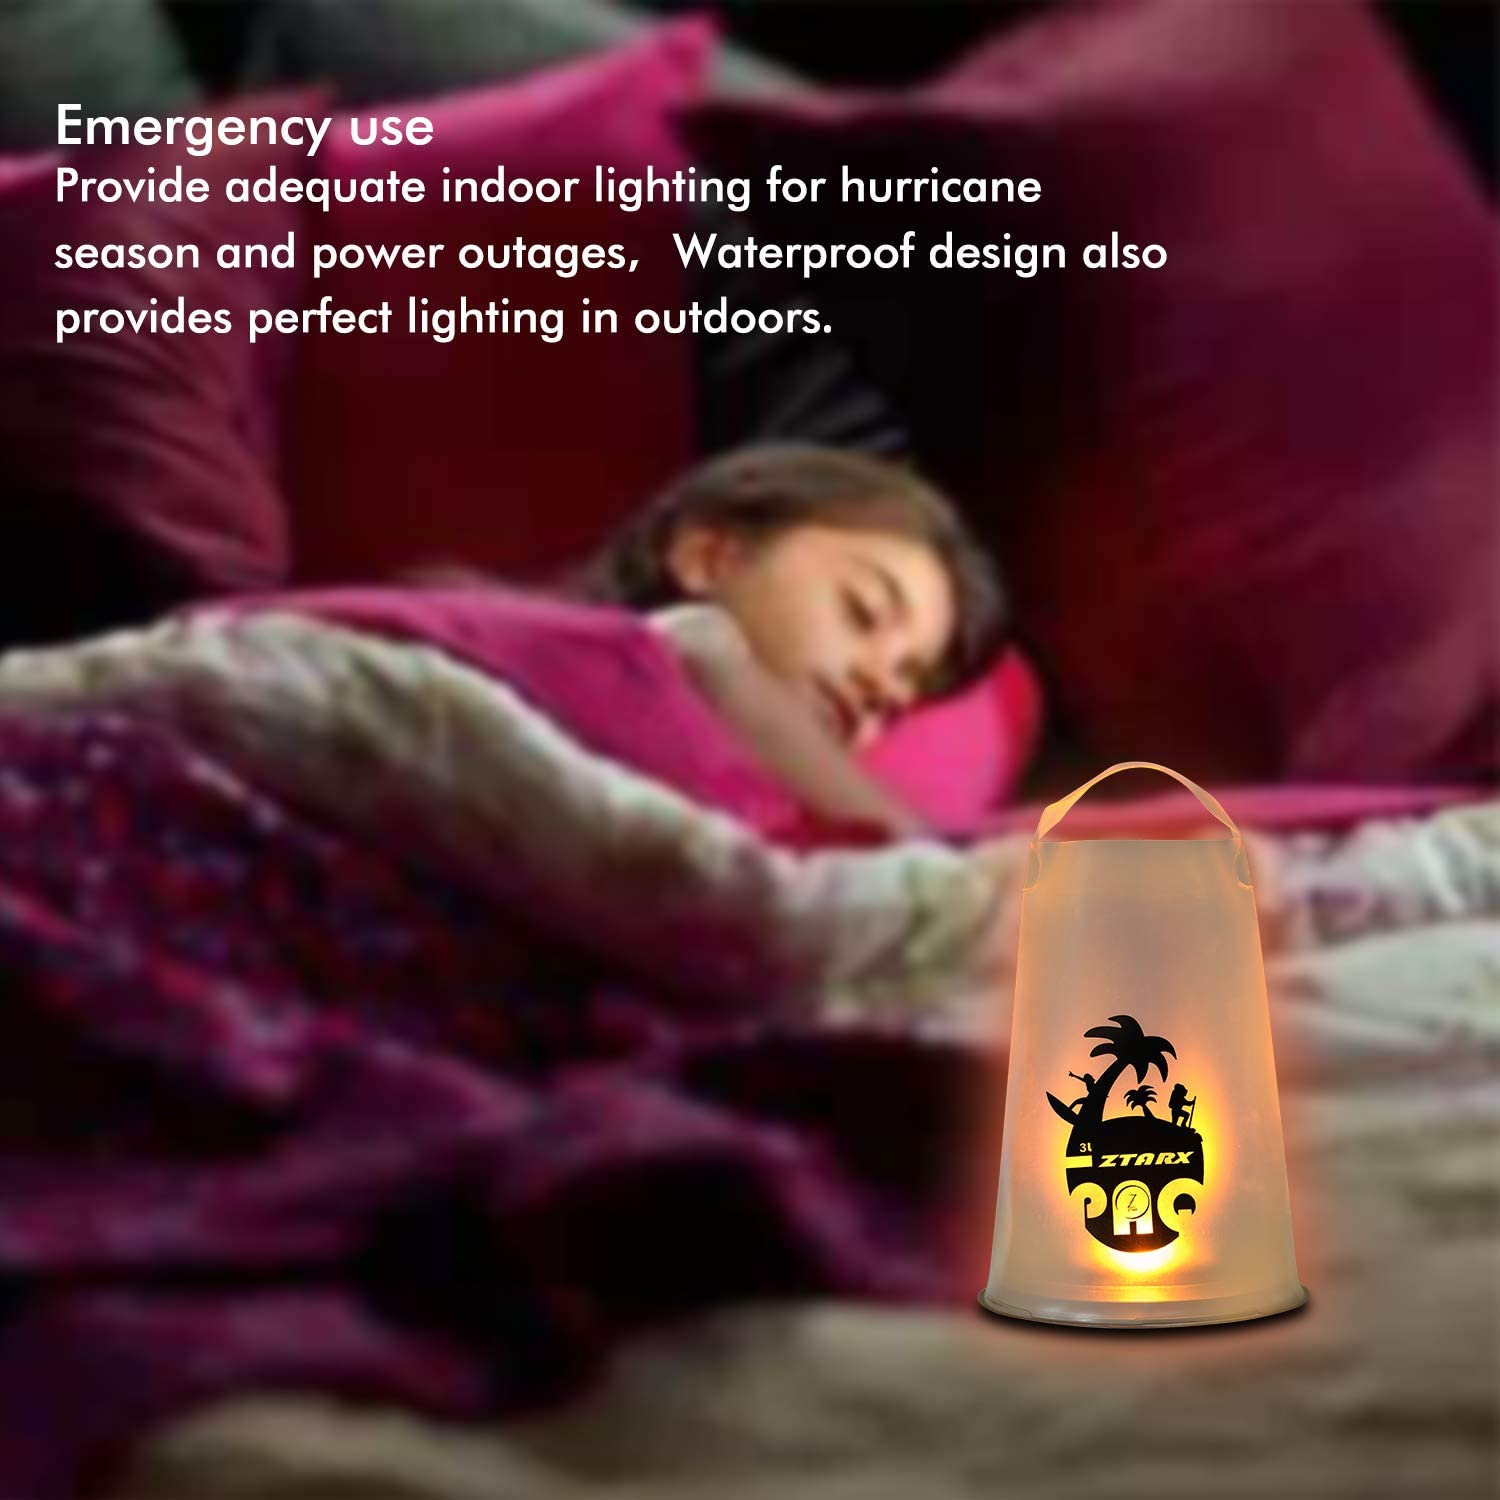 Foldable LED Waterproof Hurricane Battery Powered Light Emergency Kit Camping Portable Indoor Outdoor Lights for Halloween Hiking Inflatable Camping Lantern